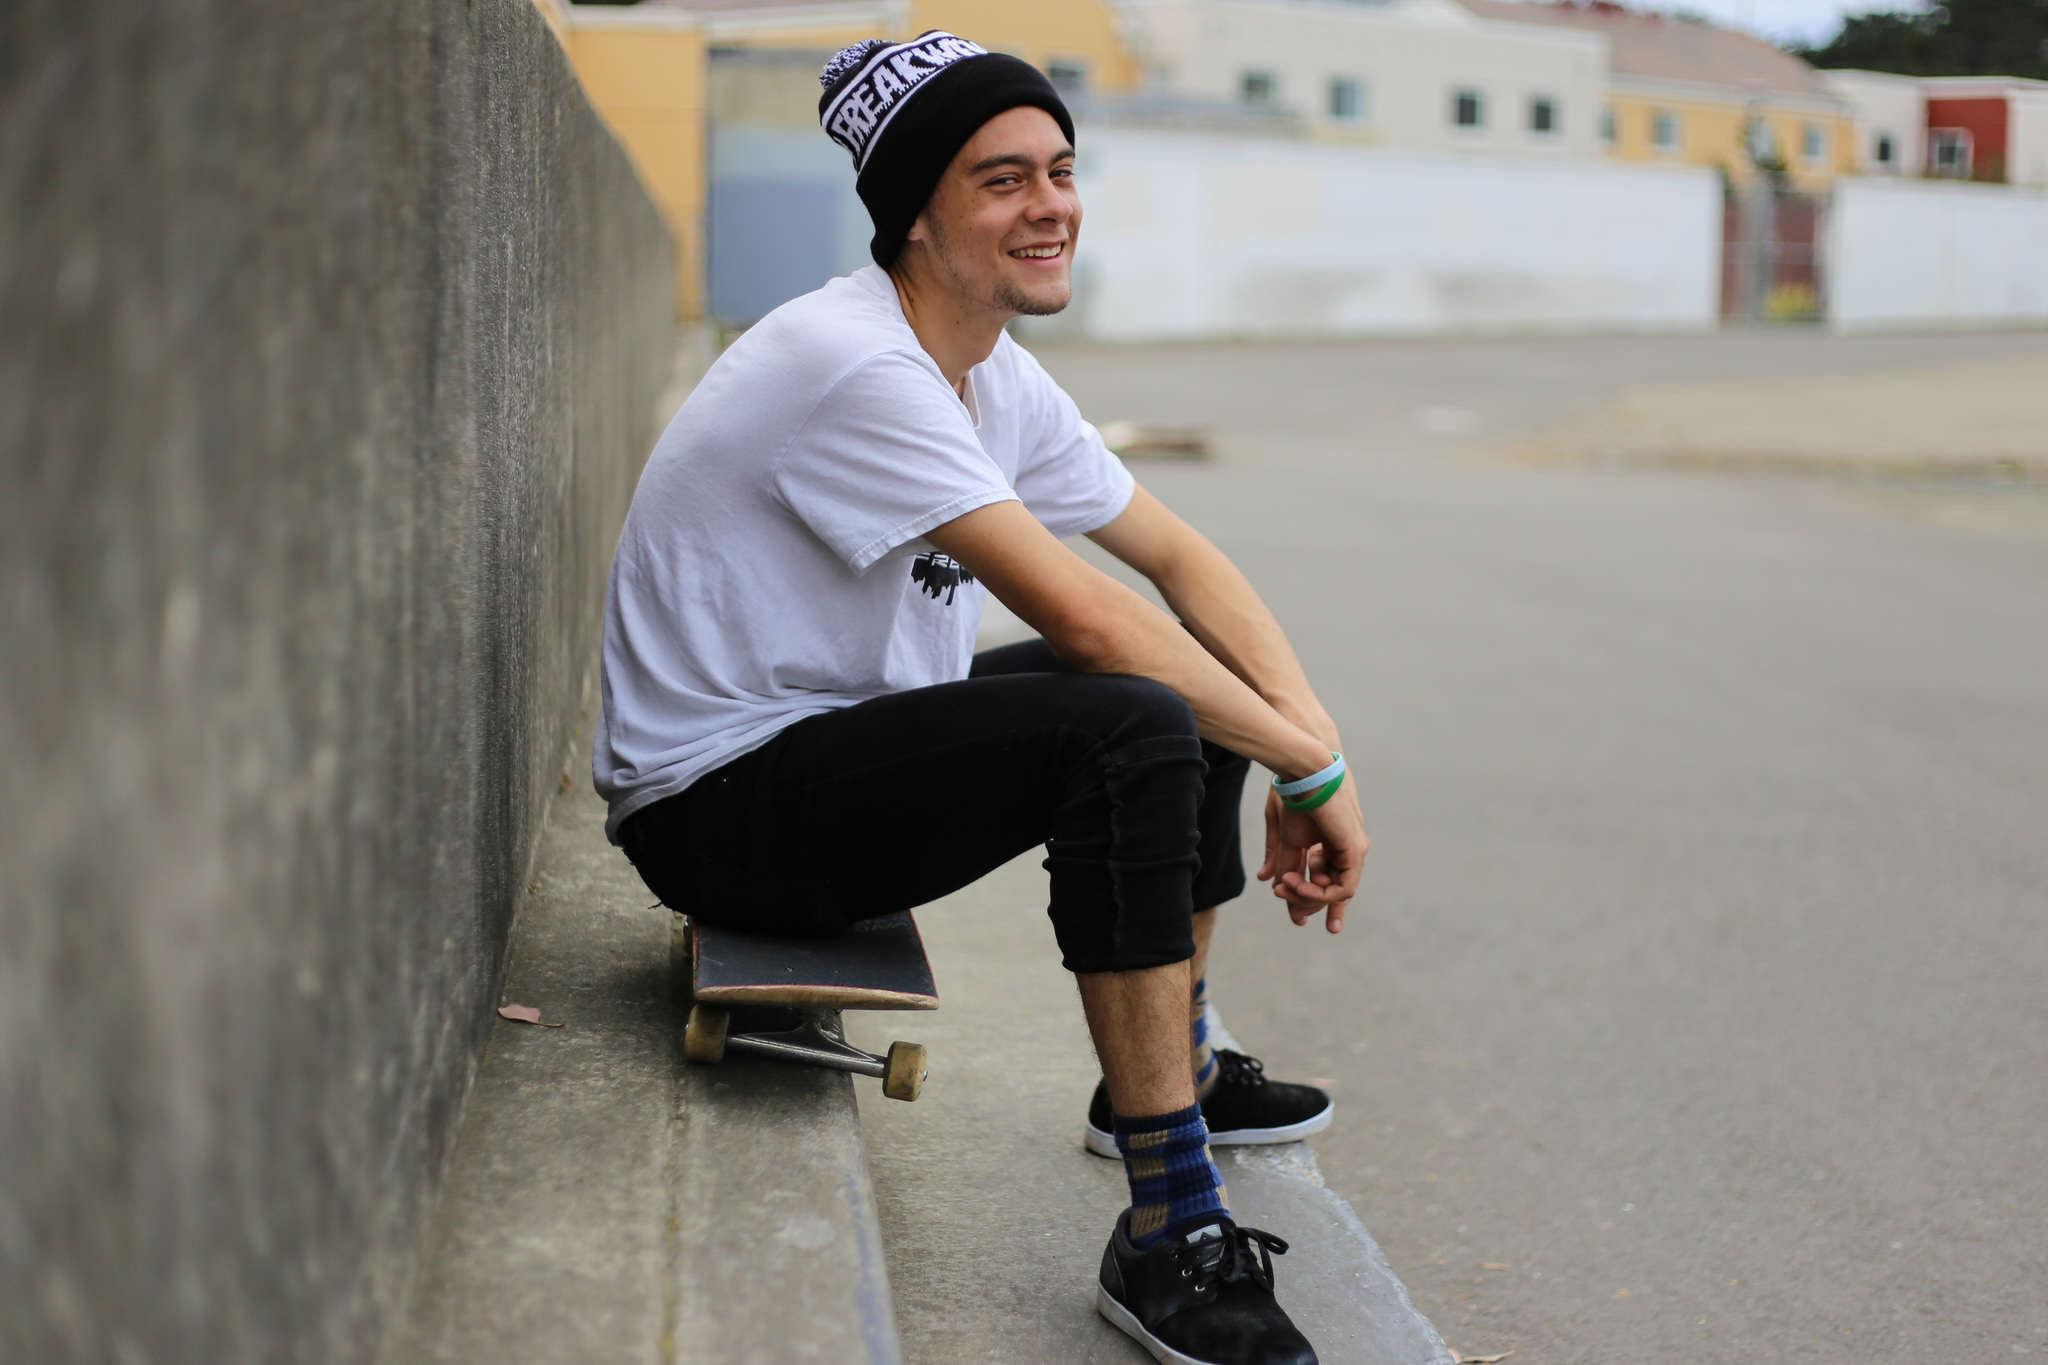 Sam Gershwin, a SF State cinema major and the owner of skate company Freakwency, stops for a portrait at the lowledge; a popular skate spot across from the West Campus Green on Monday, March. 16, 2015. (Kate Fraser / Xpress)